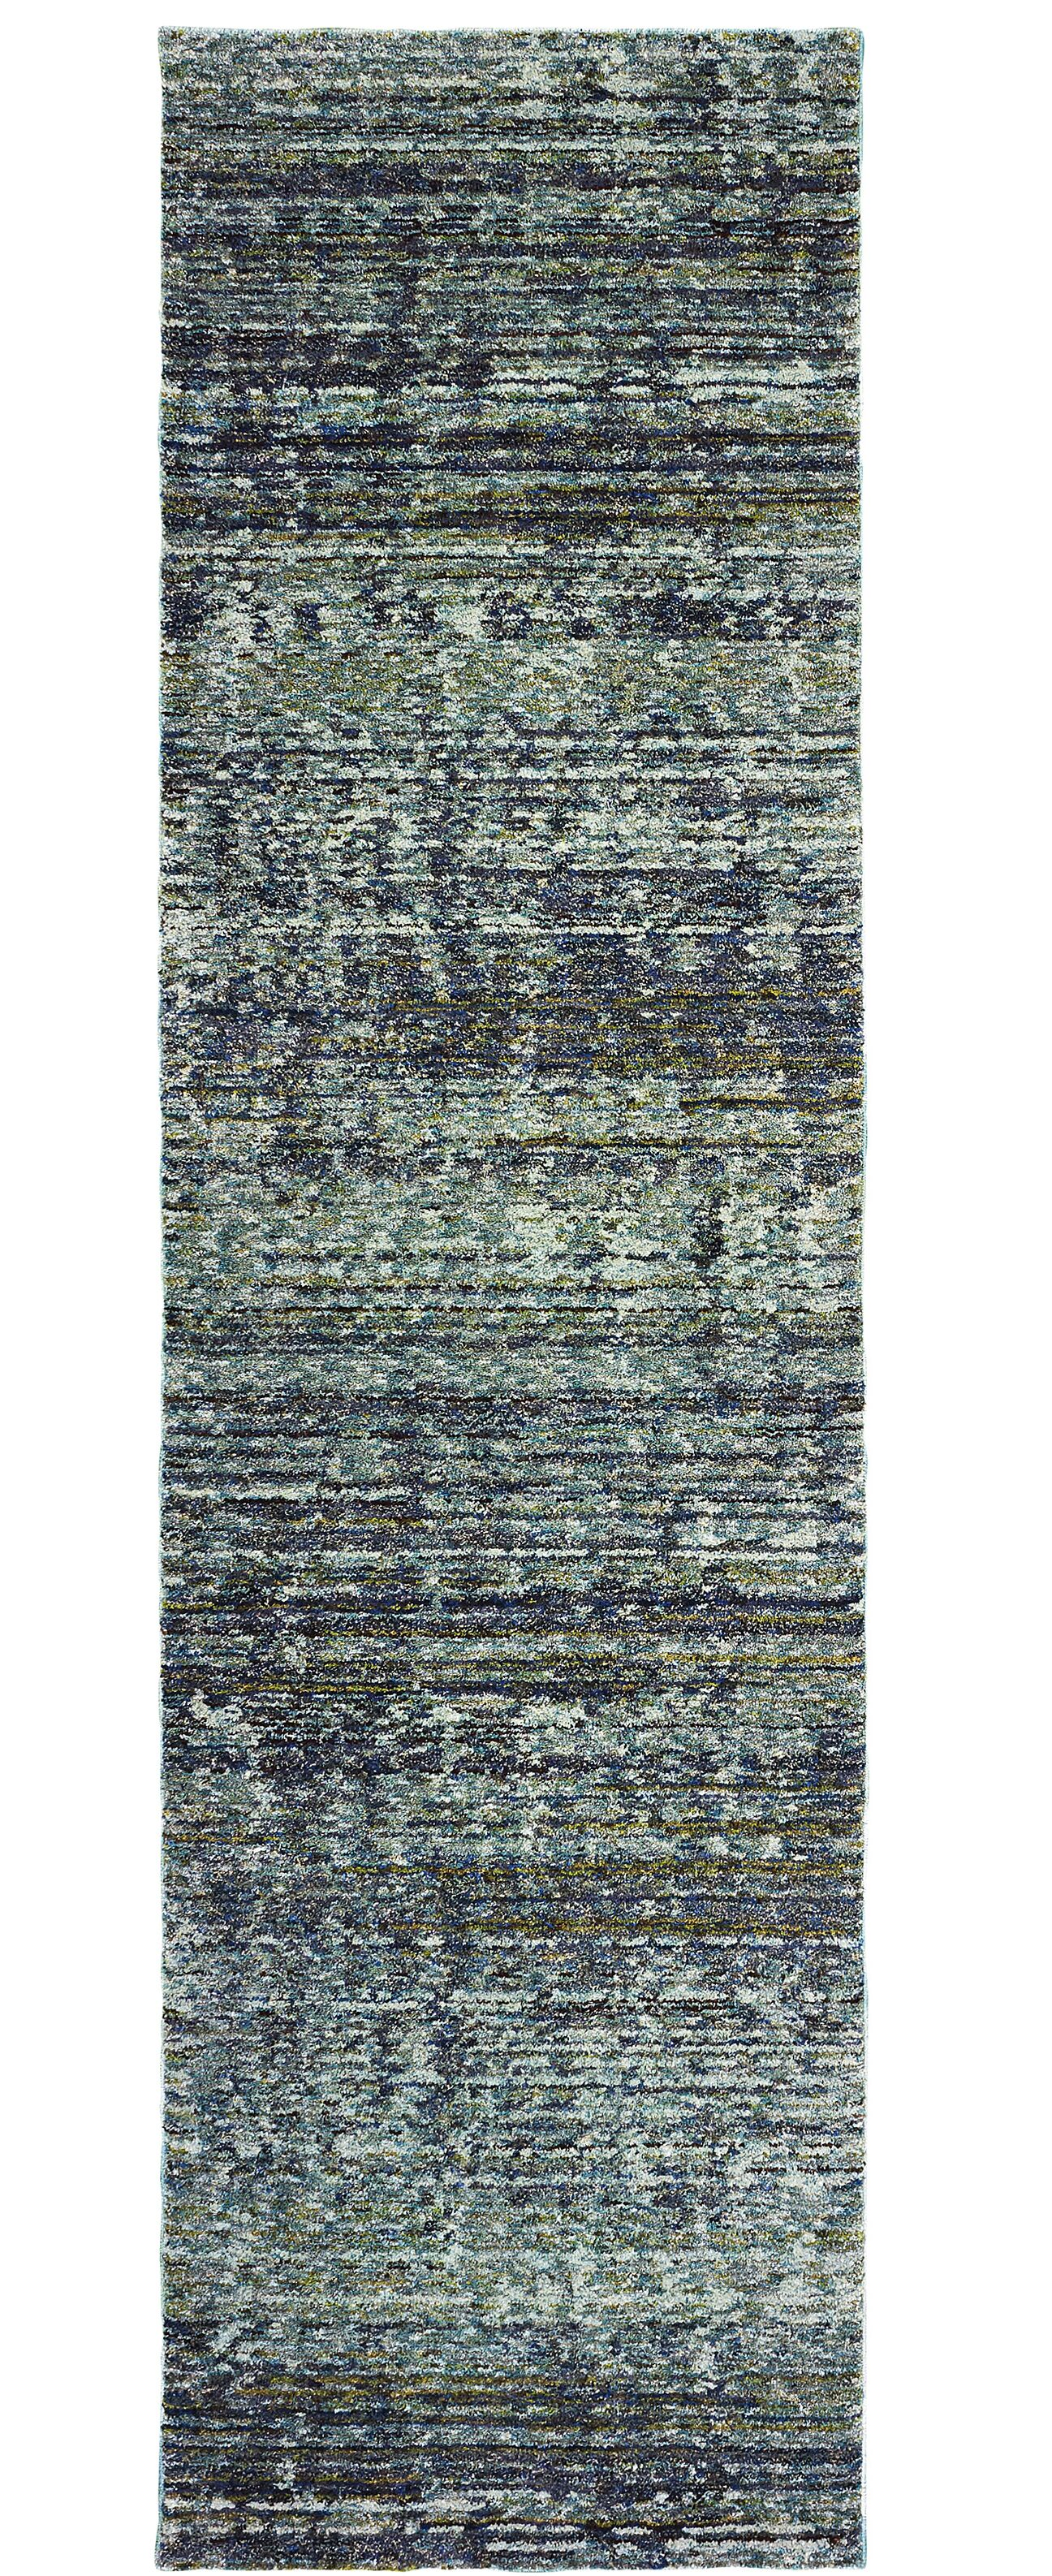 Bobby Blue/Gray Area Rug Rug Size: Runner 2'3